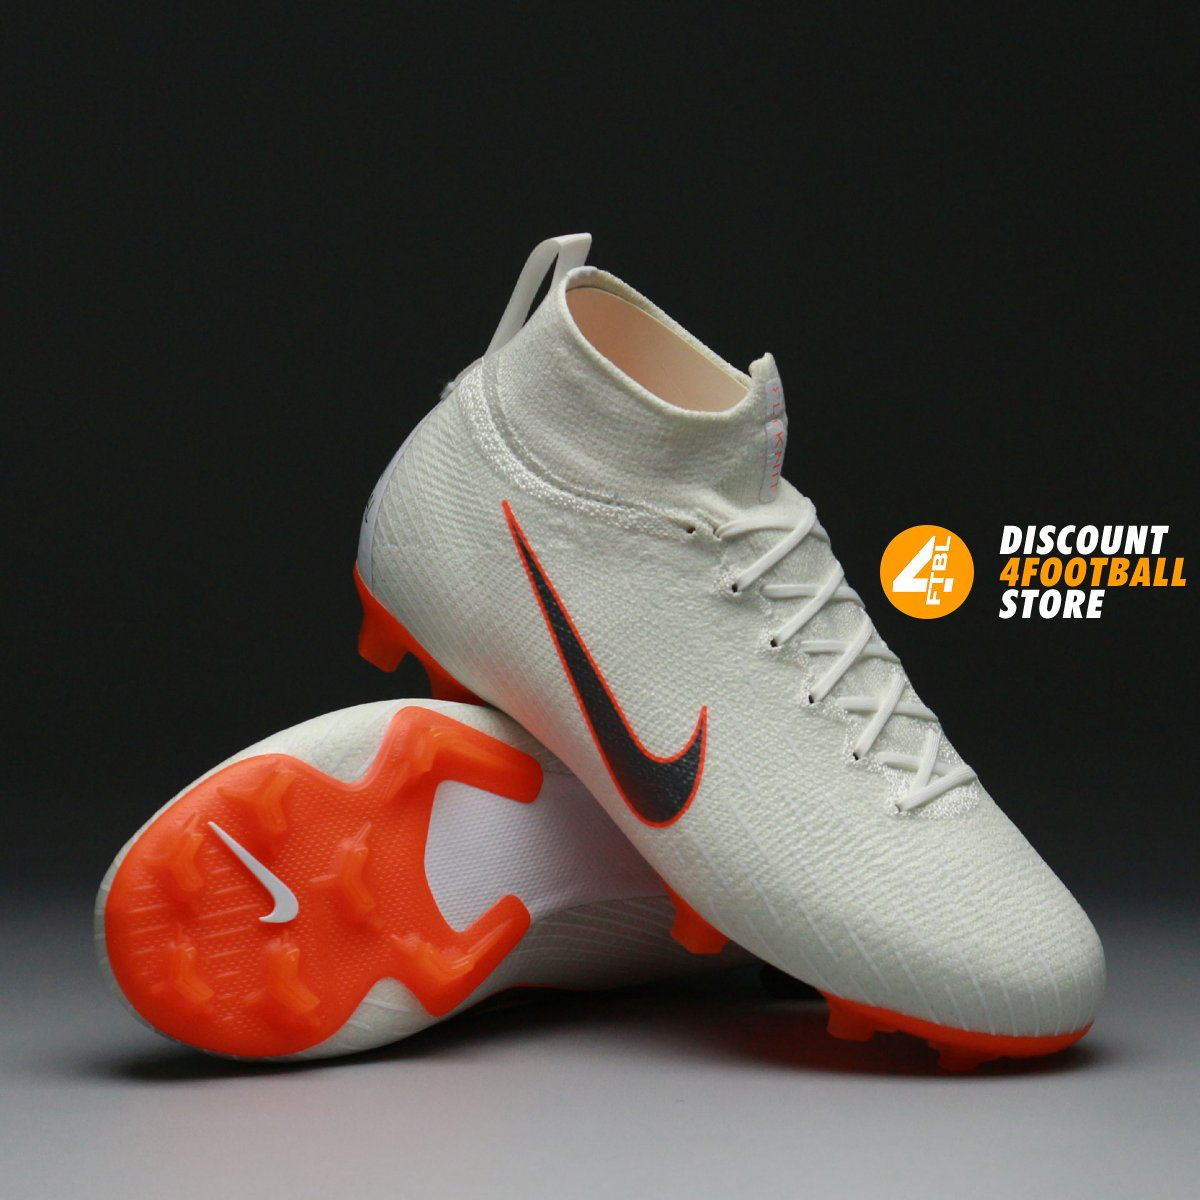 Детские бутсы Nike Mercurial SUPERFLY ELITE AH7340-107 cc8f9437ca492